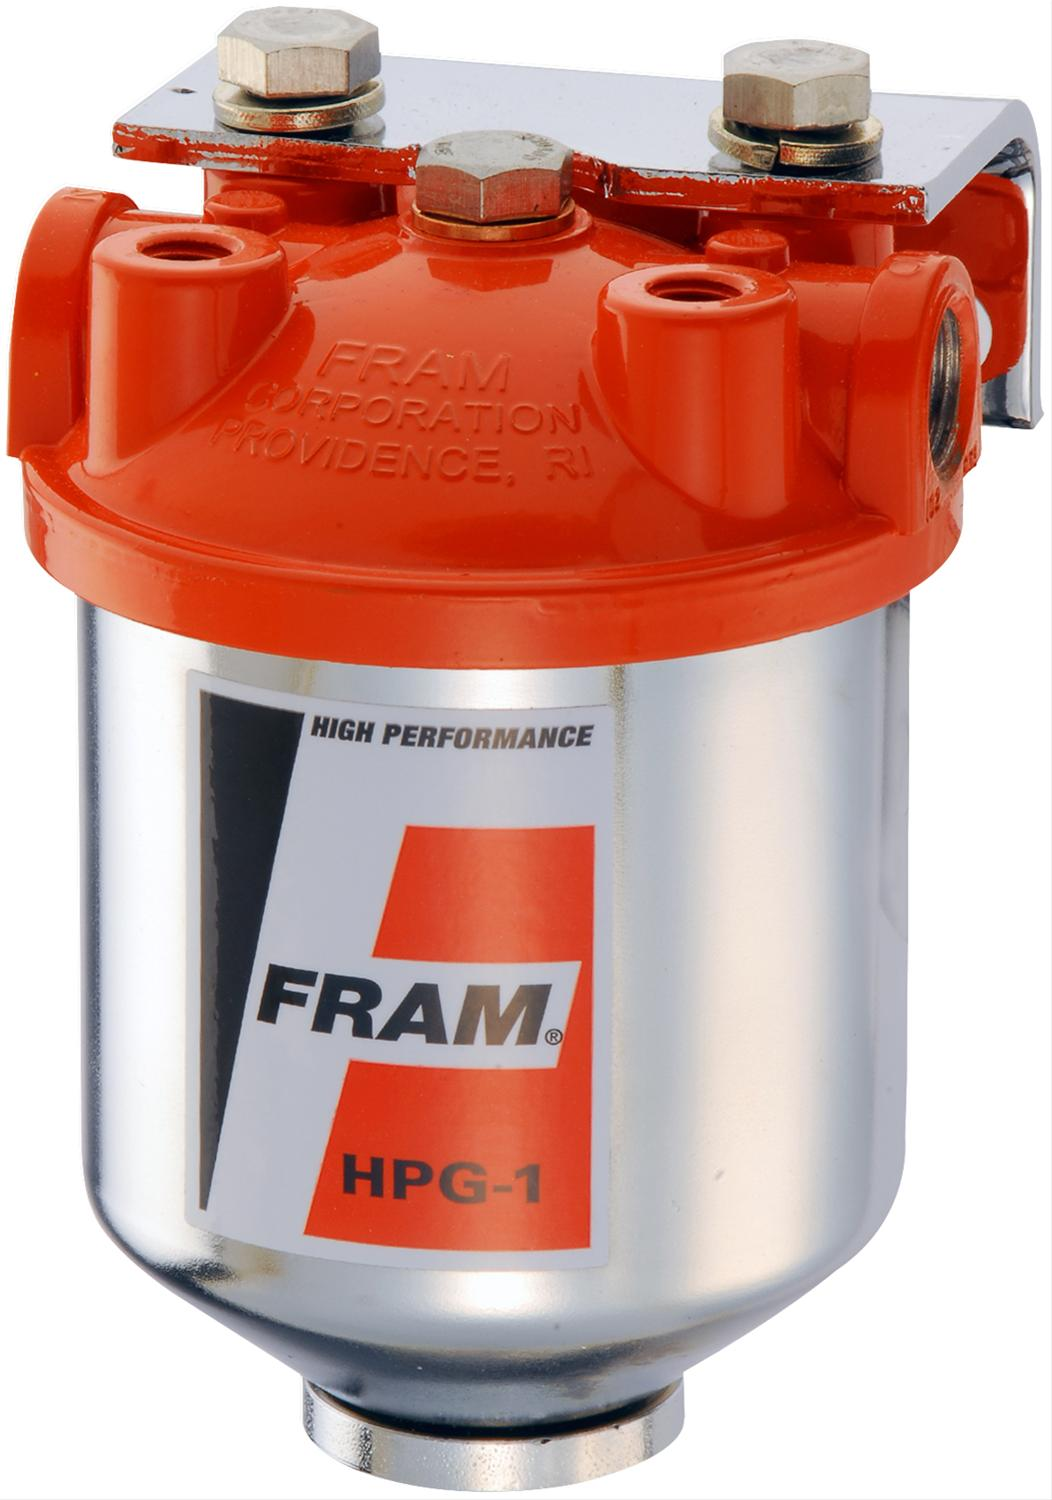 fram fuel filters hpg1 - free shipping on orders over $99 at summit racing